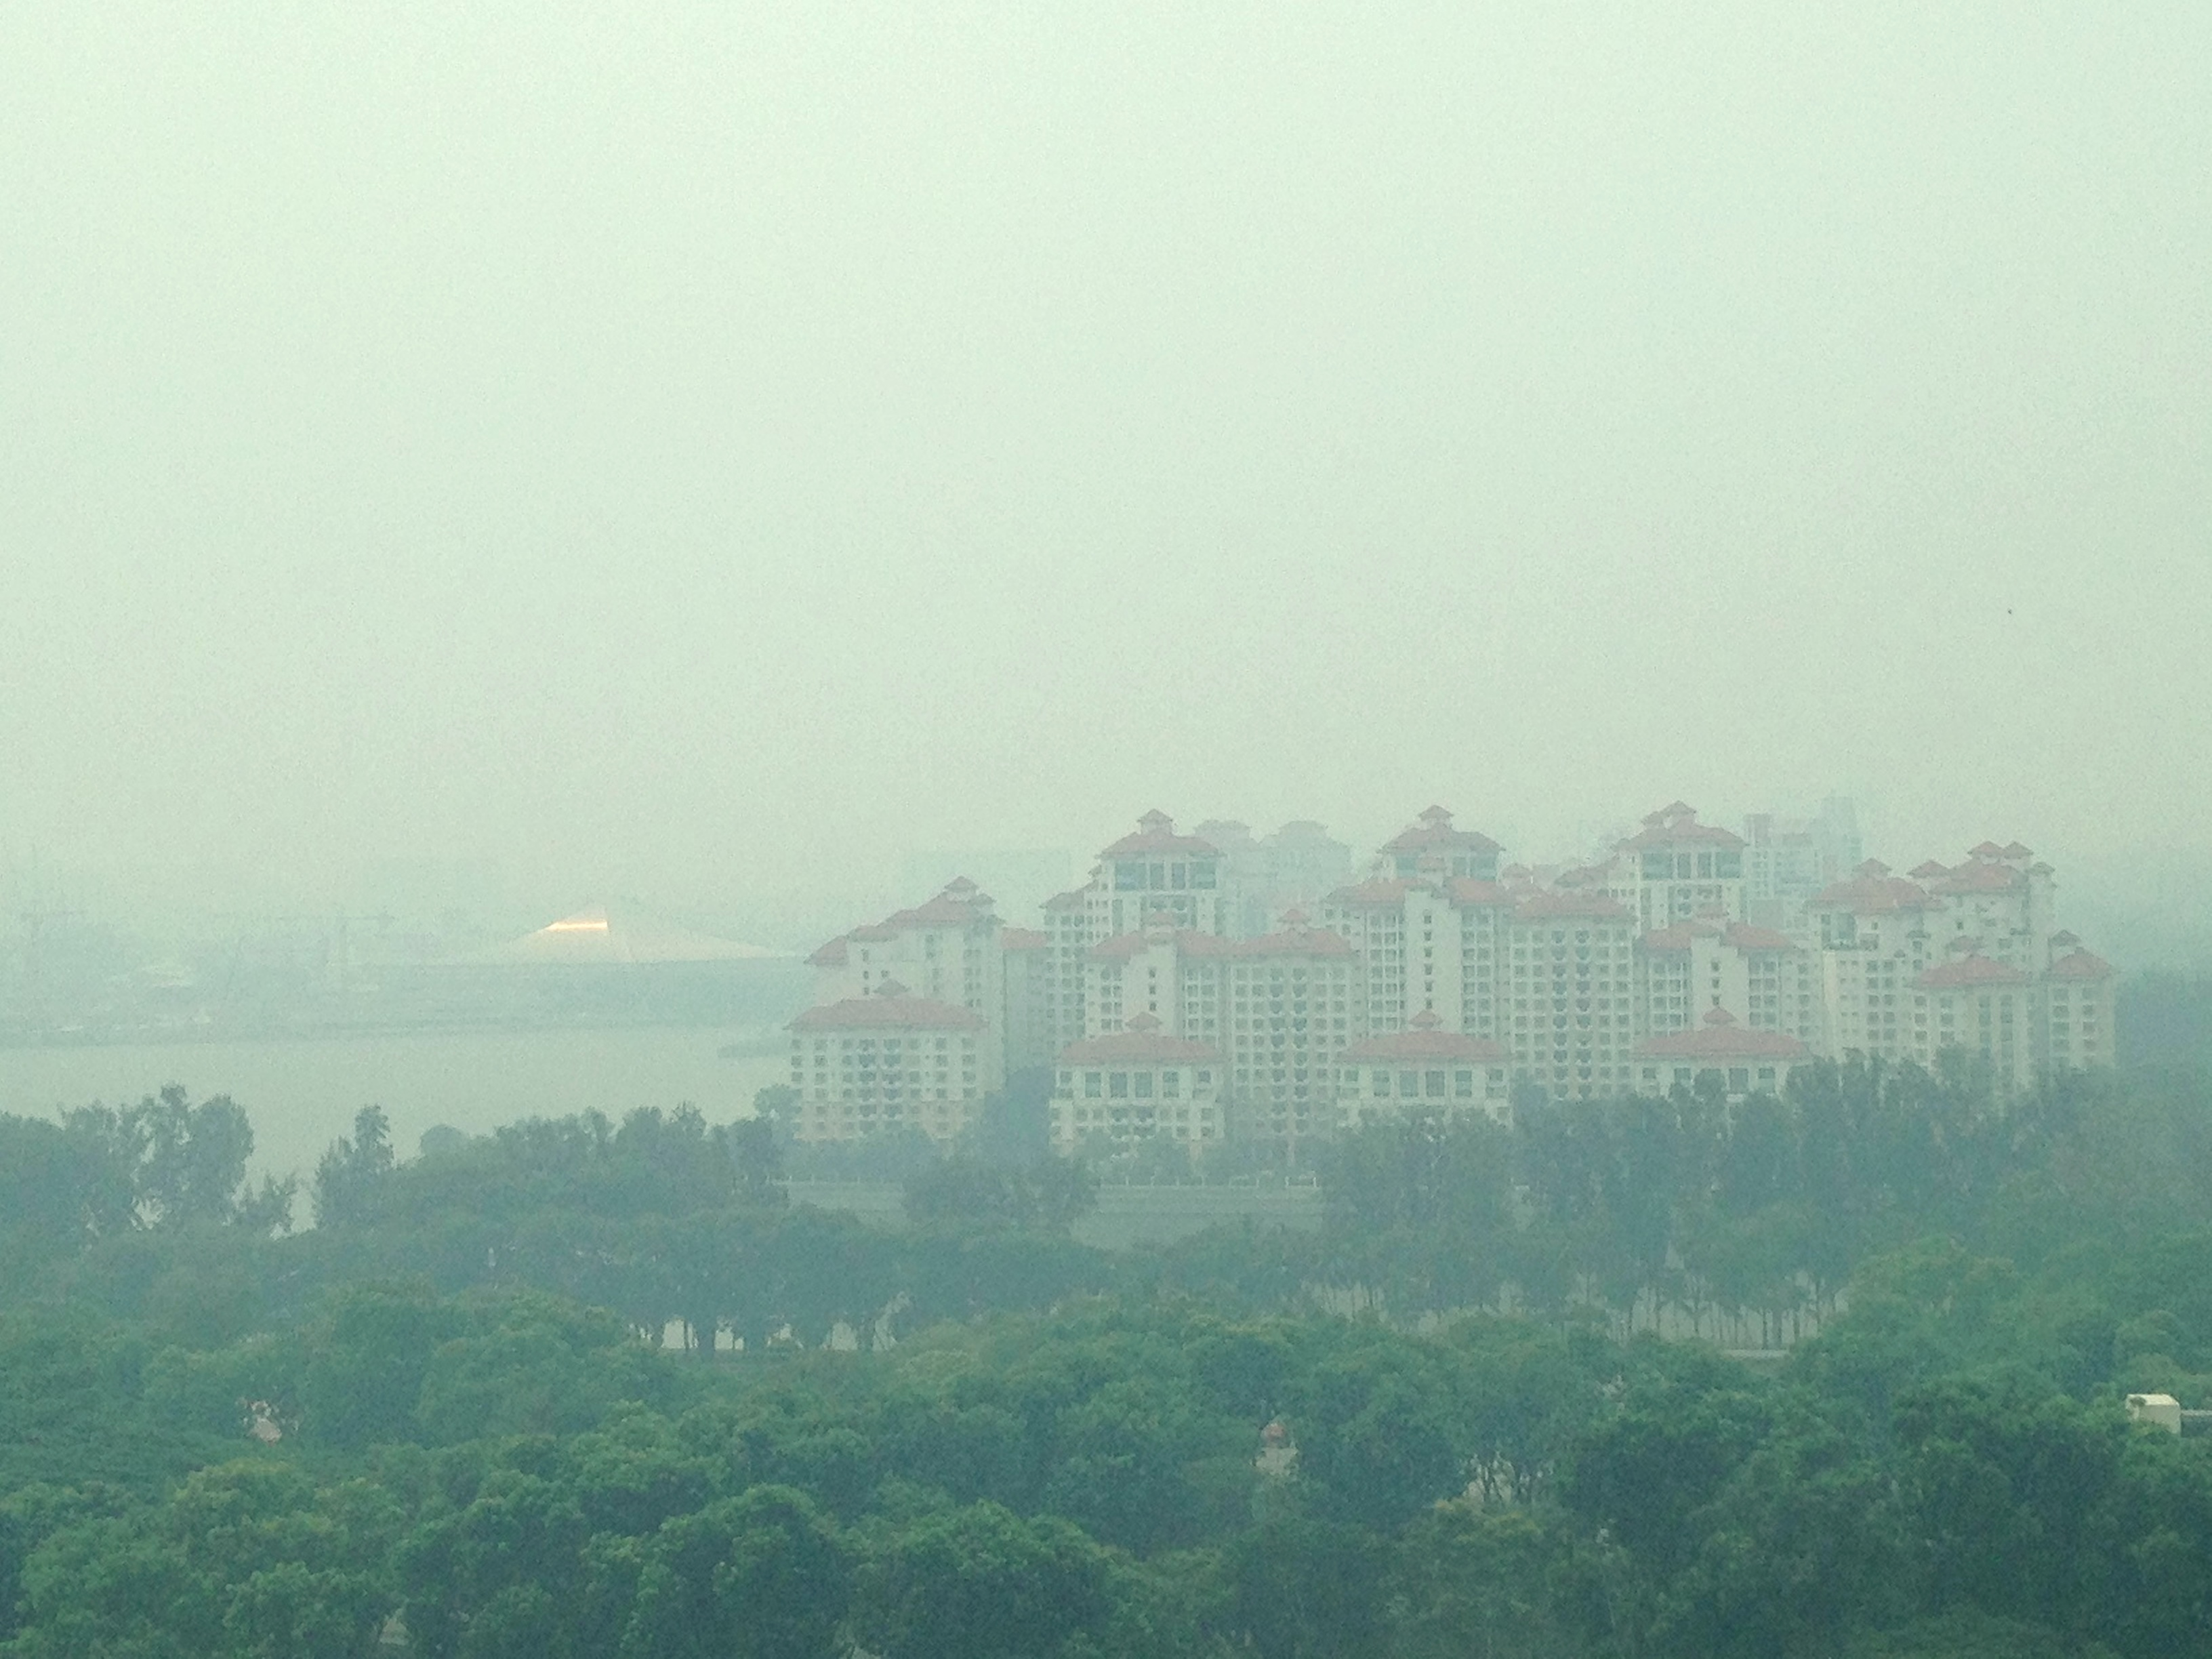 haze in singapore 26092015 singapore has sued five indonesian companies blamed for farm and plantation fires causing serious air pollution over the city-state, which is a global.